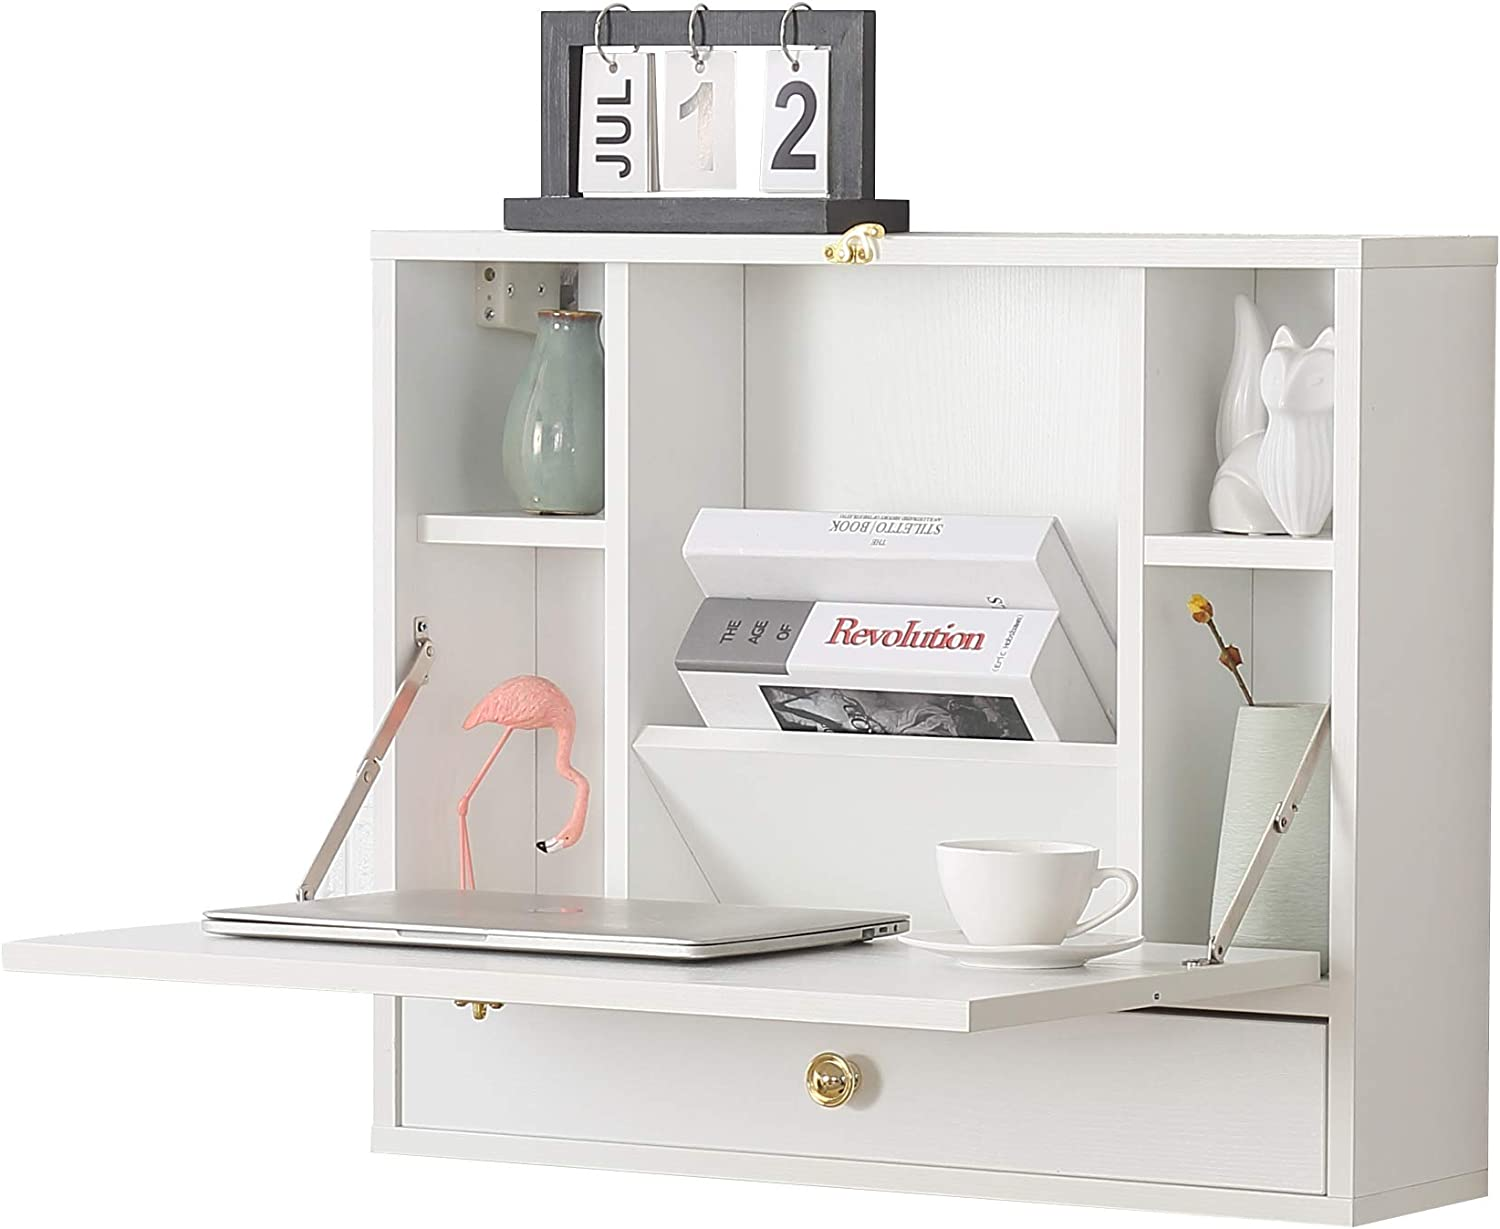 Wall Mounted Table, Folding Laptop Desk Wall-Mount Writing Desk with Storage Shelves & Drawer, Wall Mounted Desk for Home, Office, Small Spaces(White)